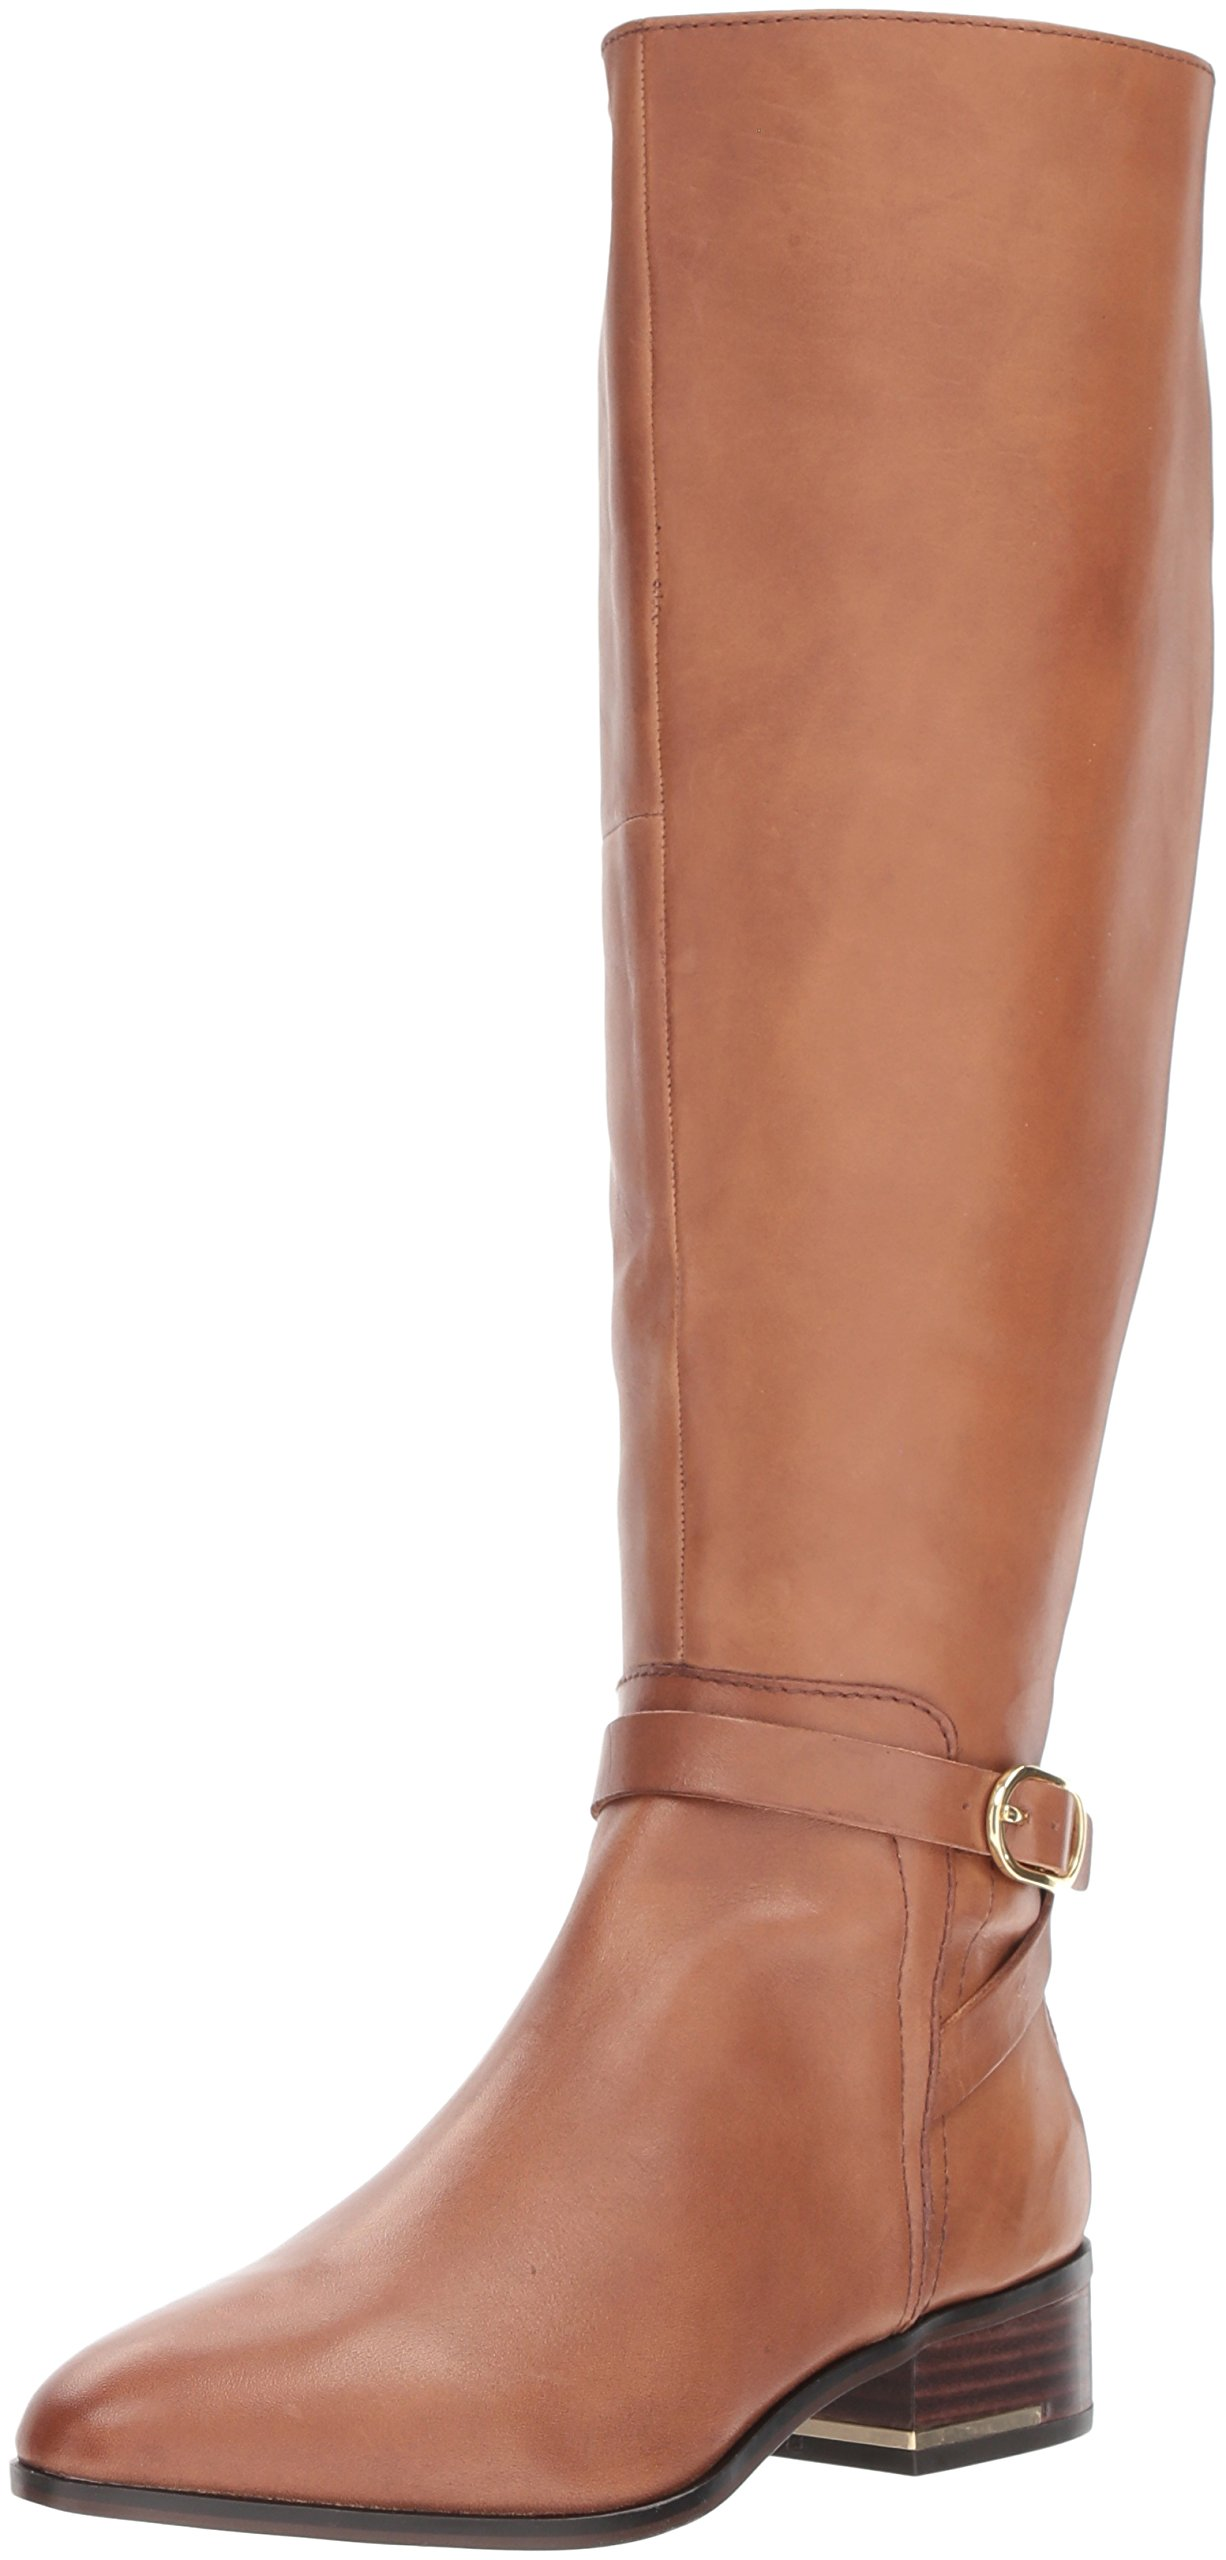 Aldo Women's Yelawiel Knee High Boot, Cognac, 8.5 B US